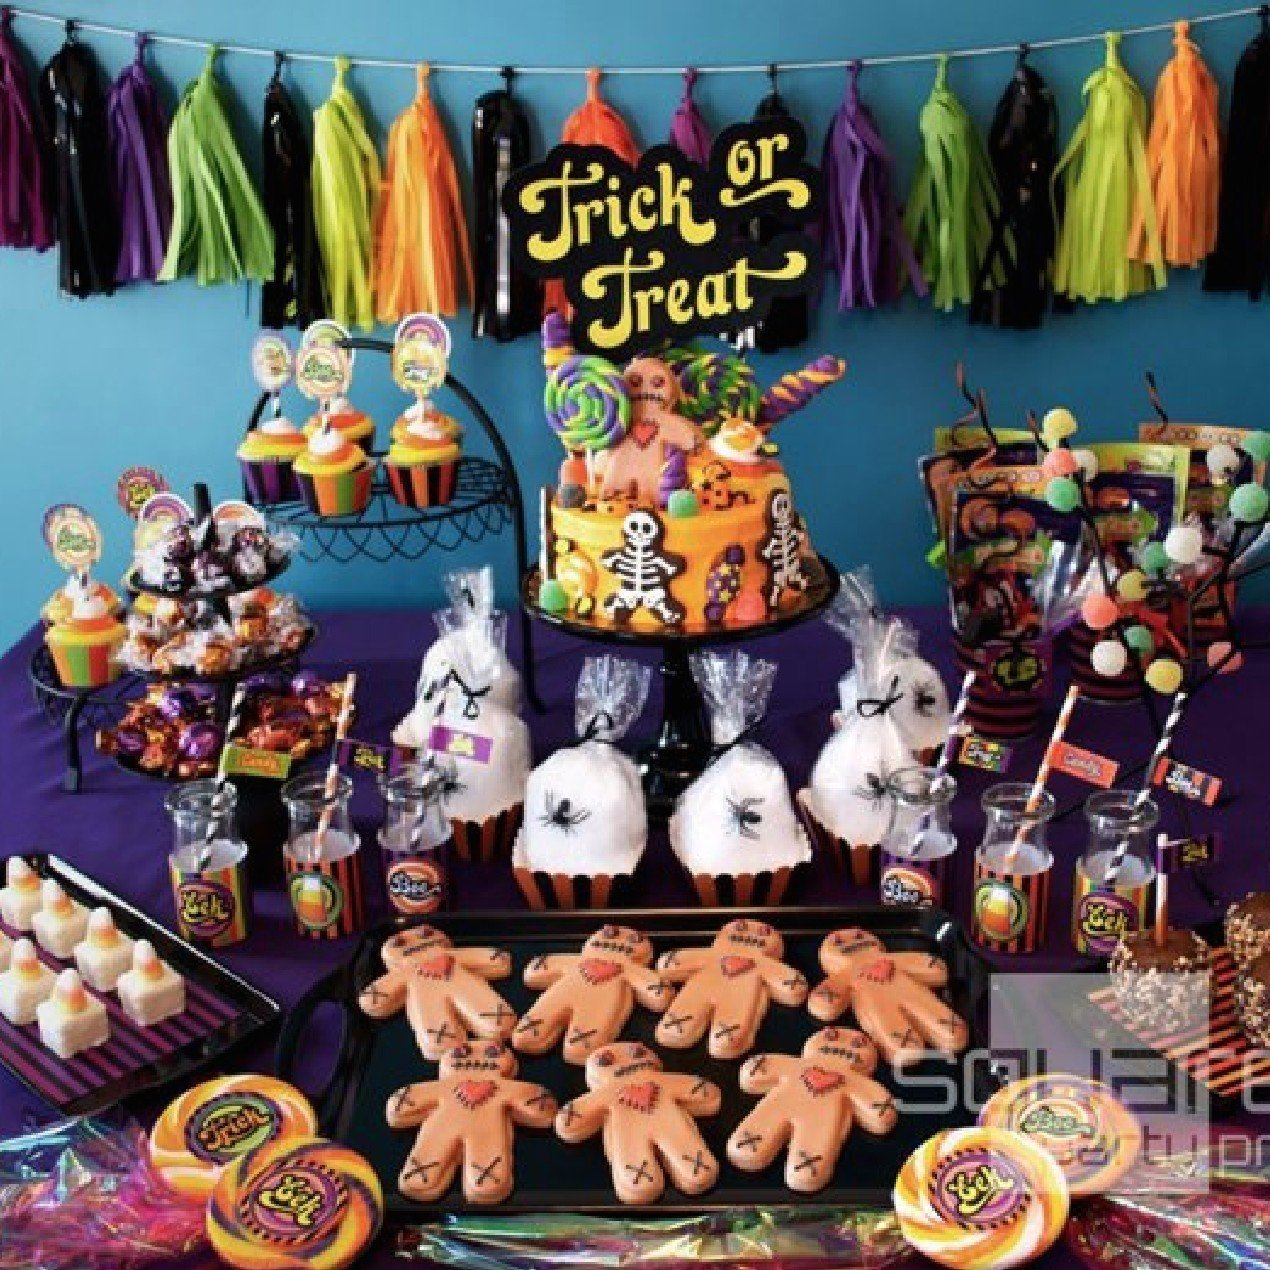 10 Wonderful Halloween Party Ideas For Preschoolers kid friendly halloween party ideas popsugar moms 4 2020